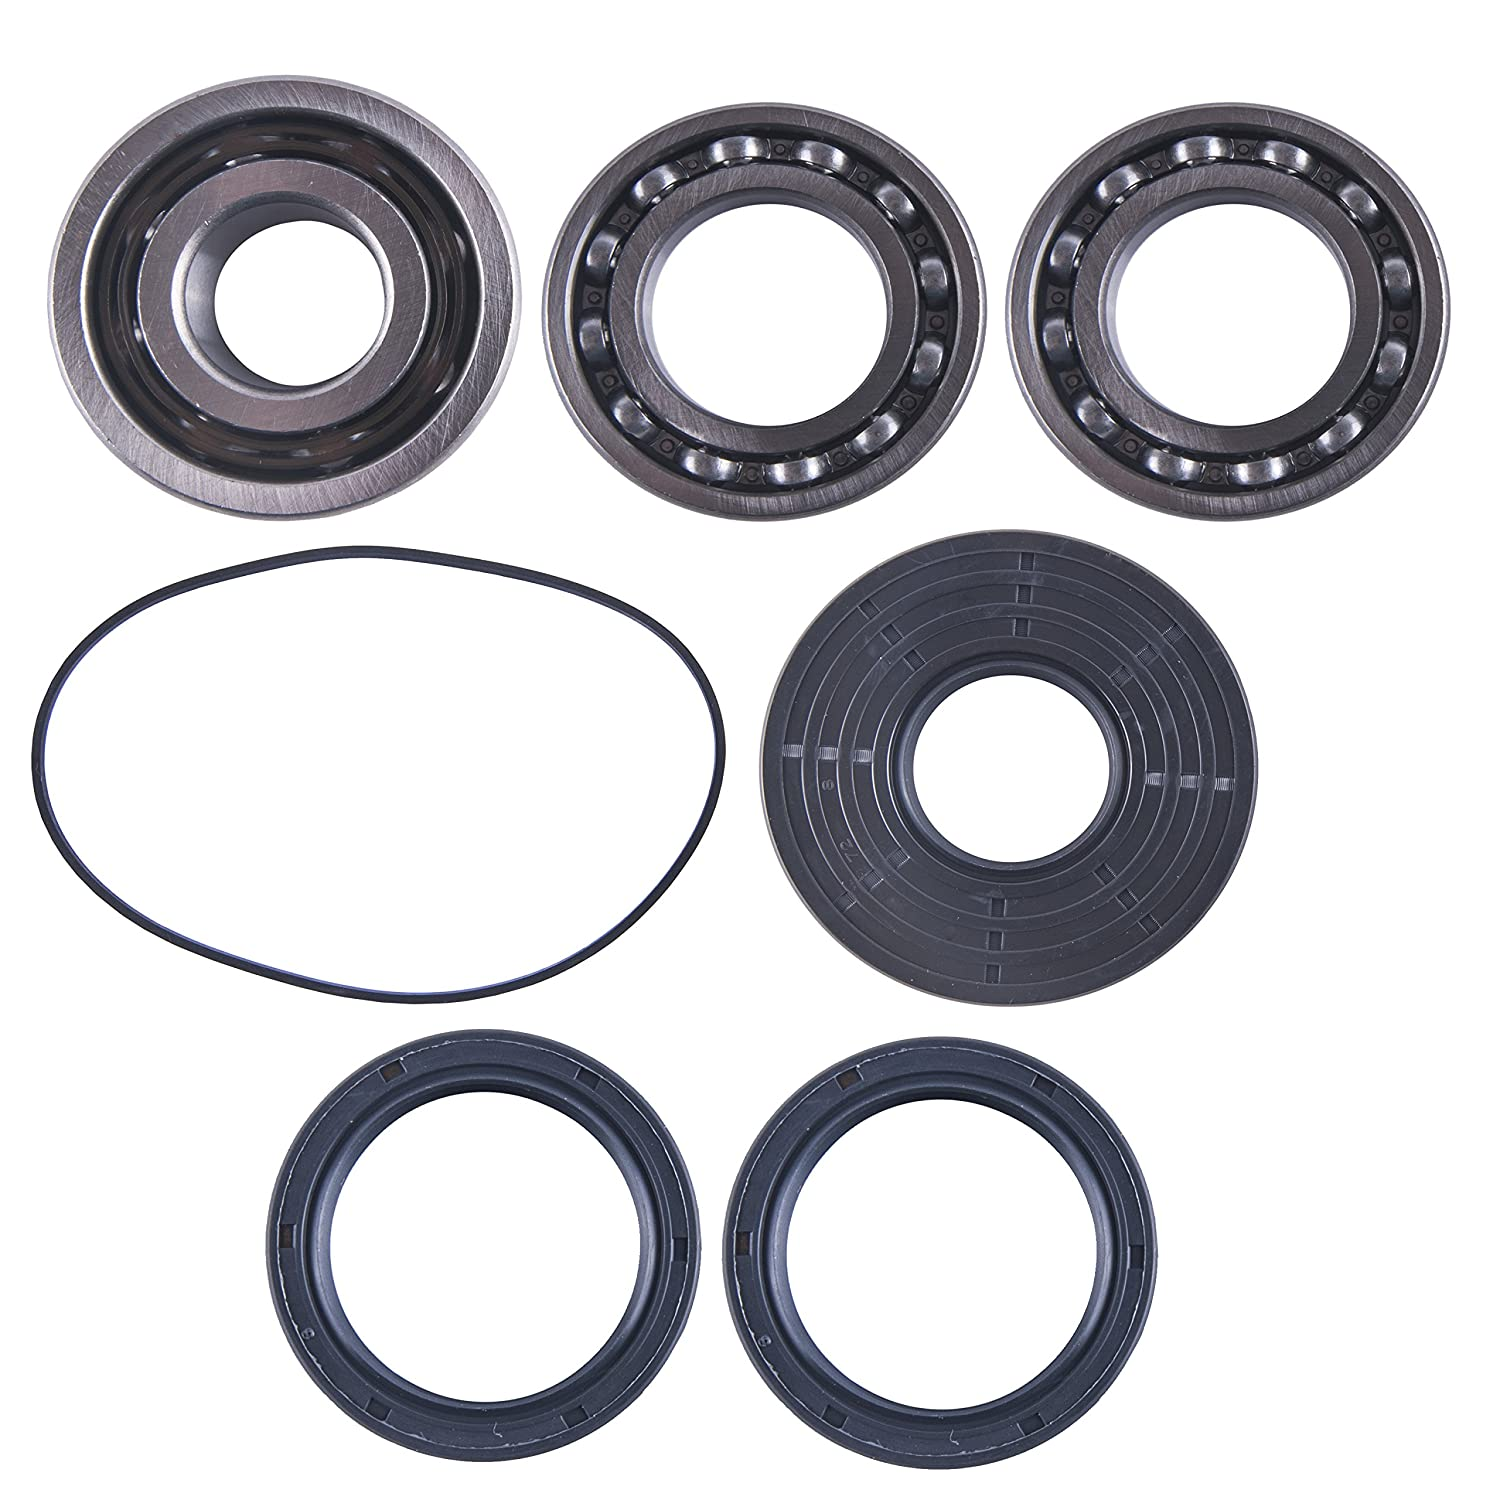 East Lake Axle front differential bearing /& seal kit compatible with Ranger XP//RZR S//RZR XP 900//1000 2017 2018 2019